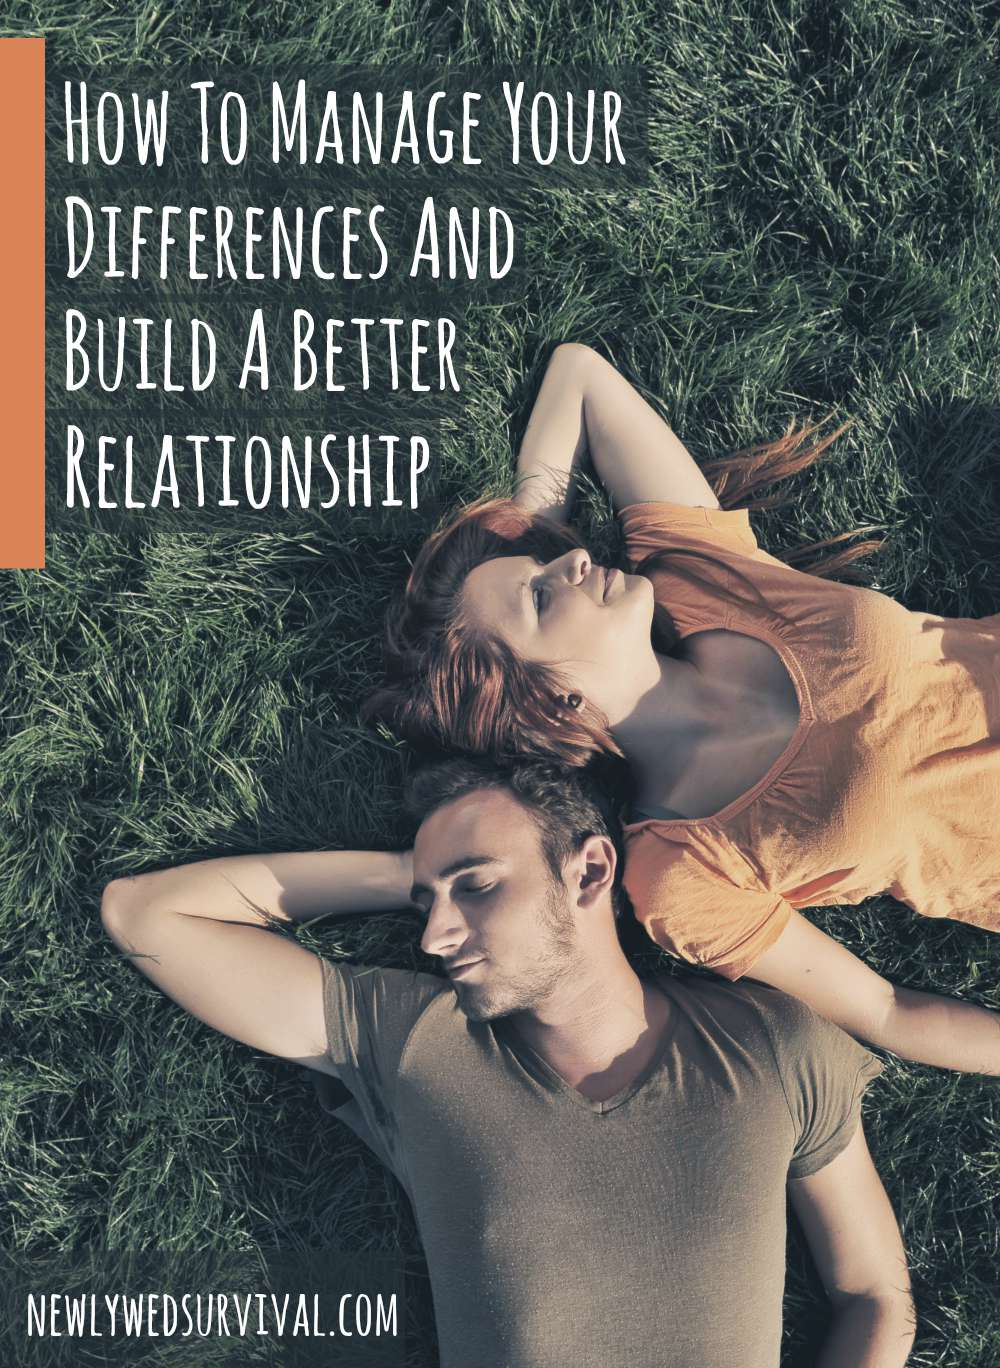 How To Manage Your Differences And Build A Better Relationship